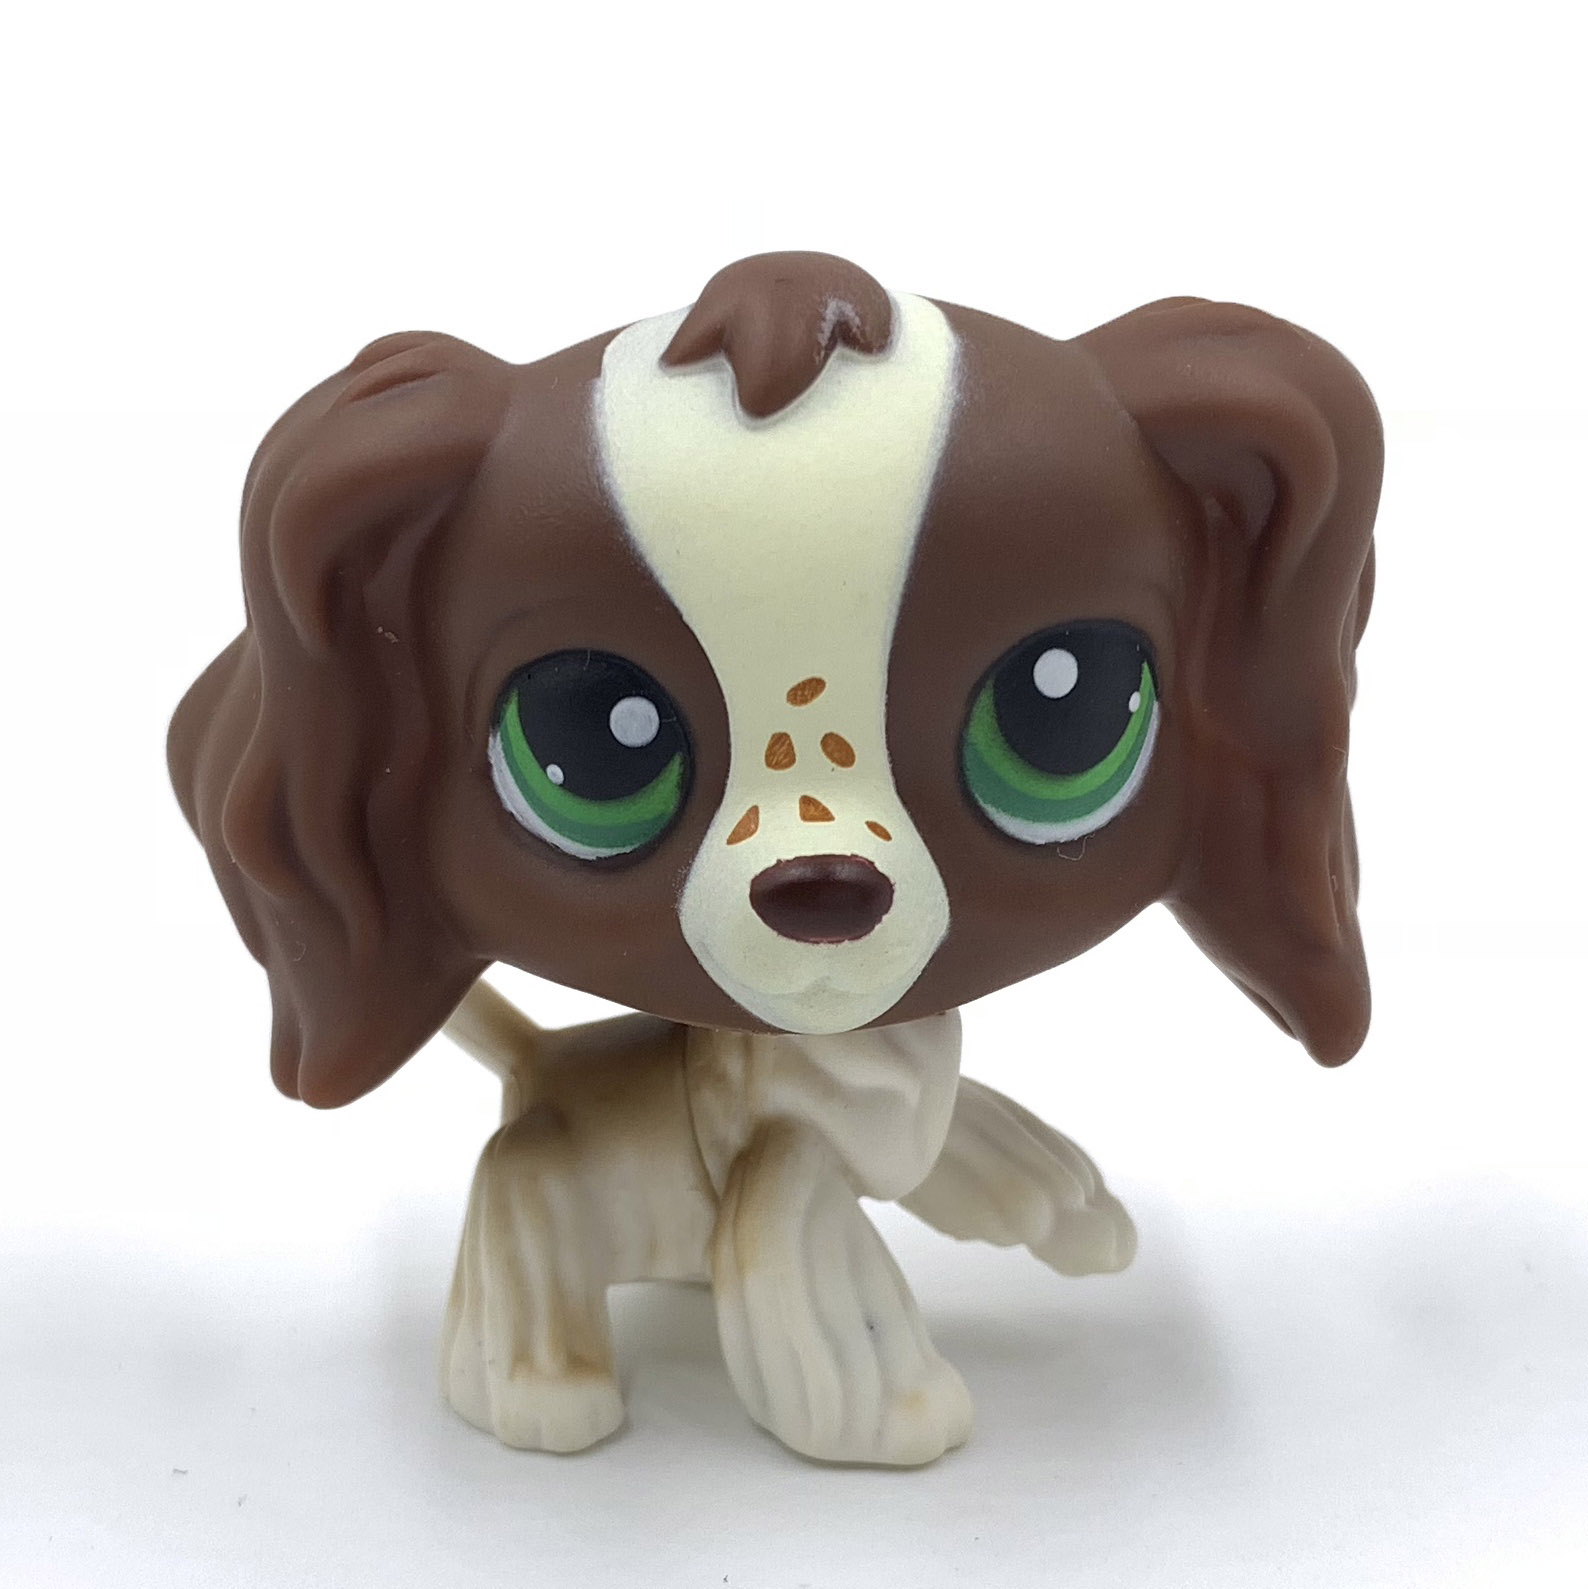 Rare Pet Shop Lps Toys Figure #156 Little Brown Dog Cocker Spaniel There Are Spots On The Nose Rare Collection For Girls